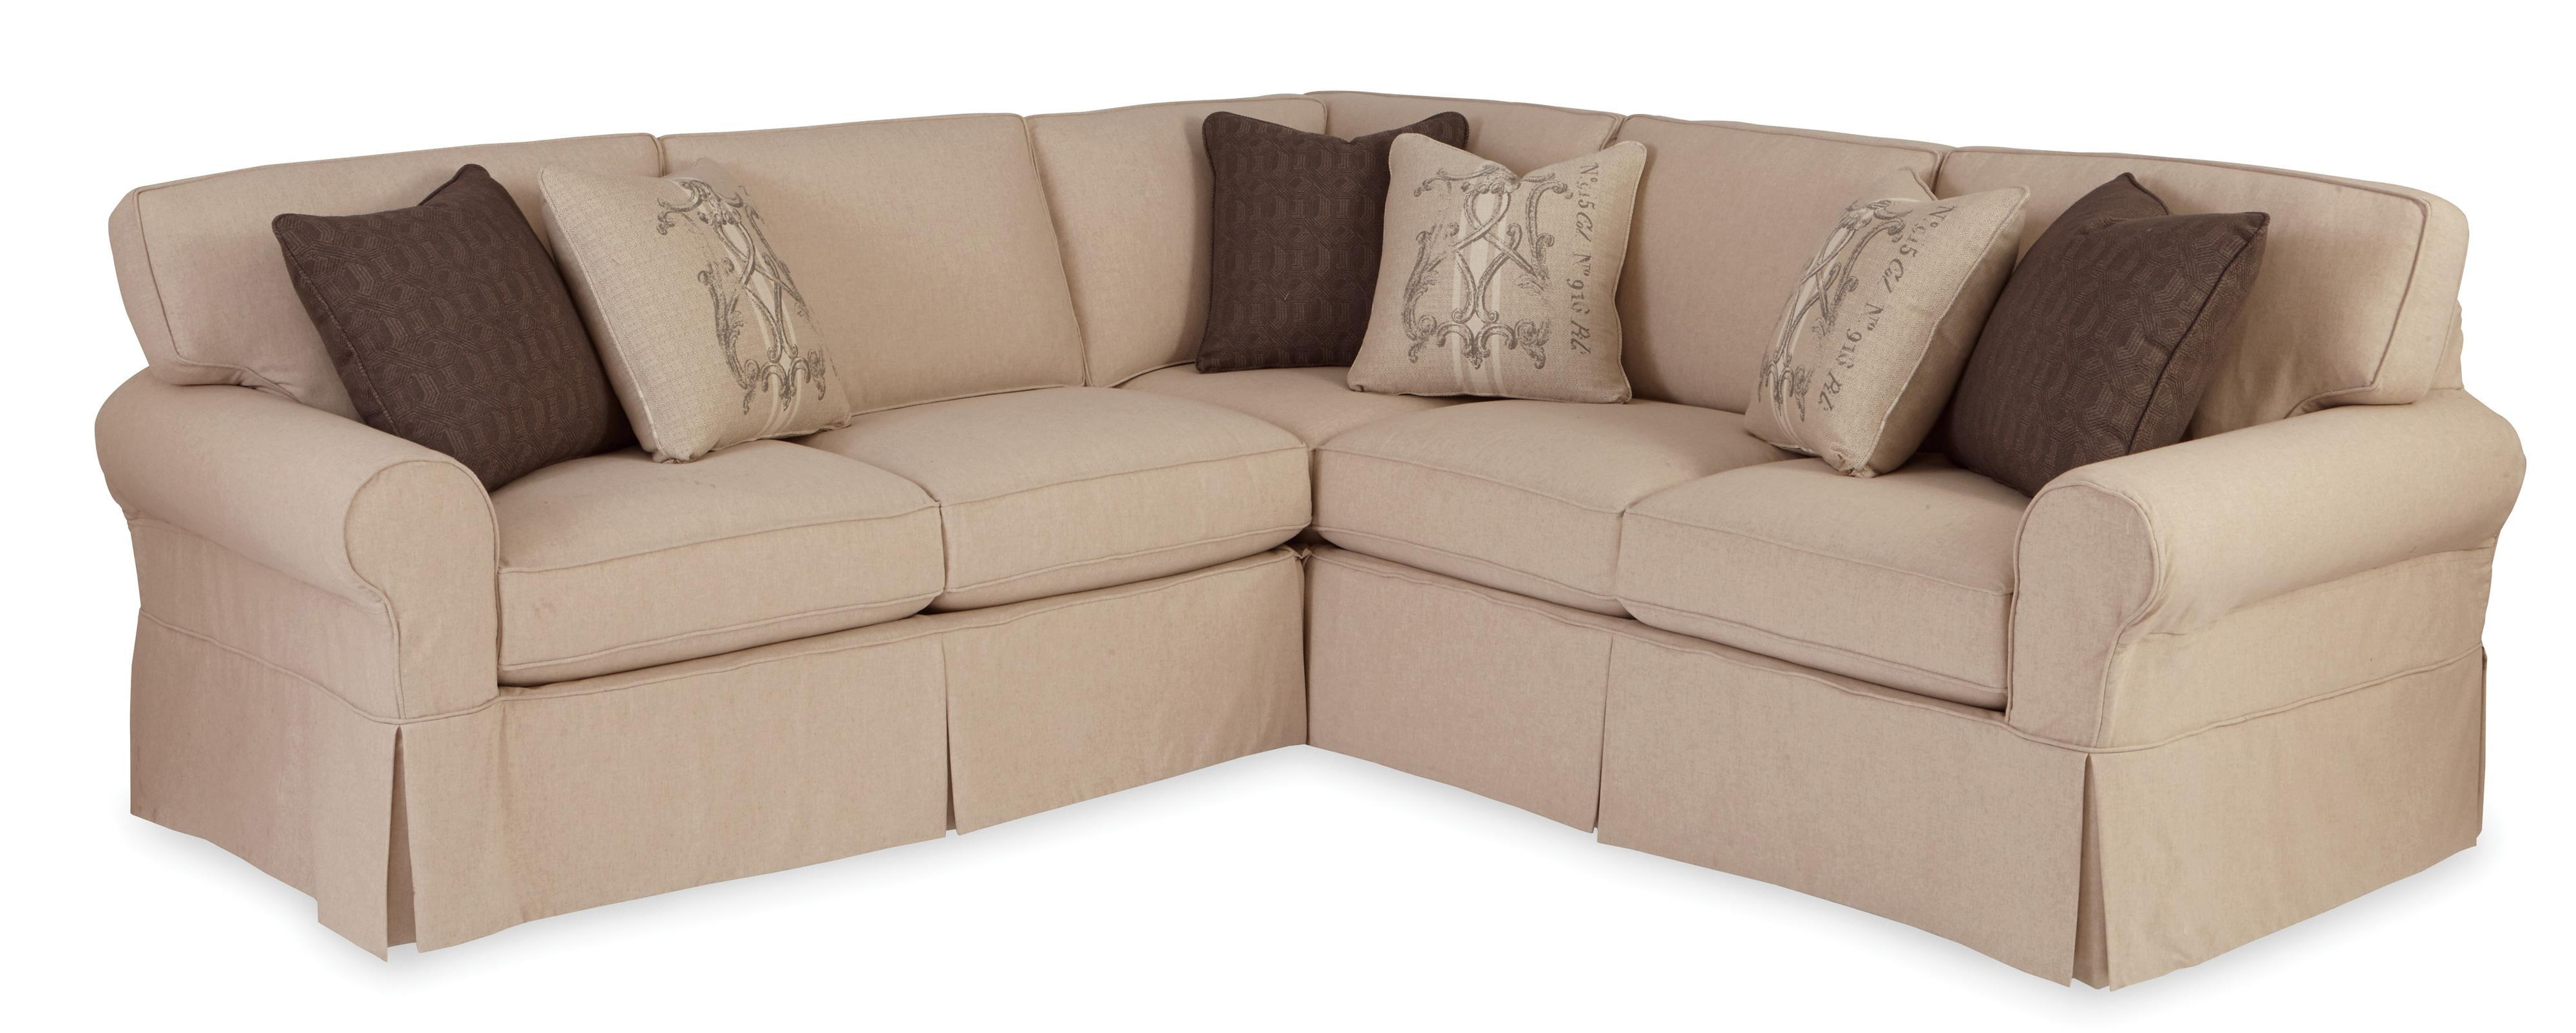 Sofas Center : Used Sectional Sofas Sale Moncler Factory Outlets Throughout Used Sectionals (View 14 of 20)